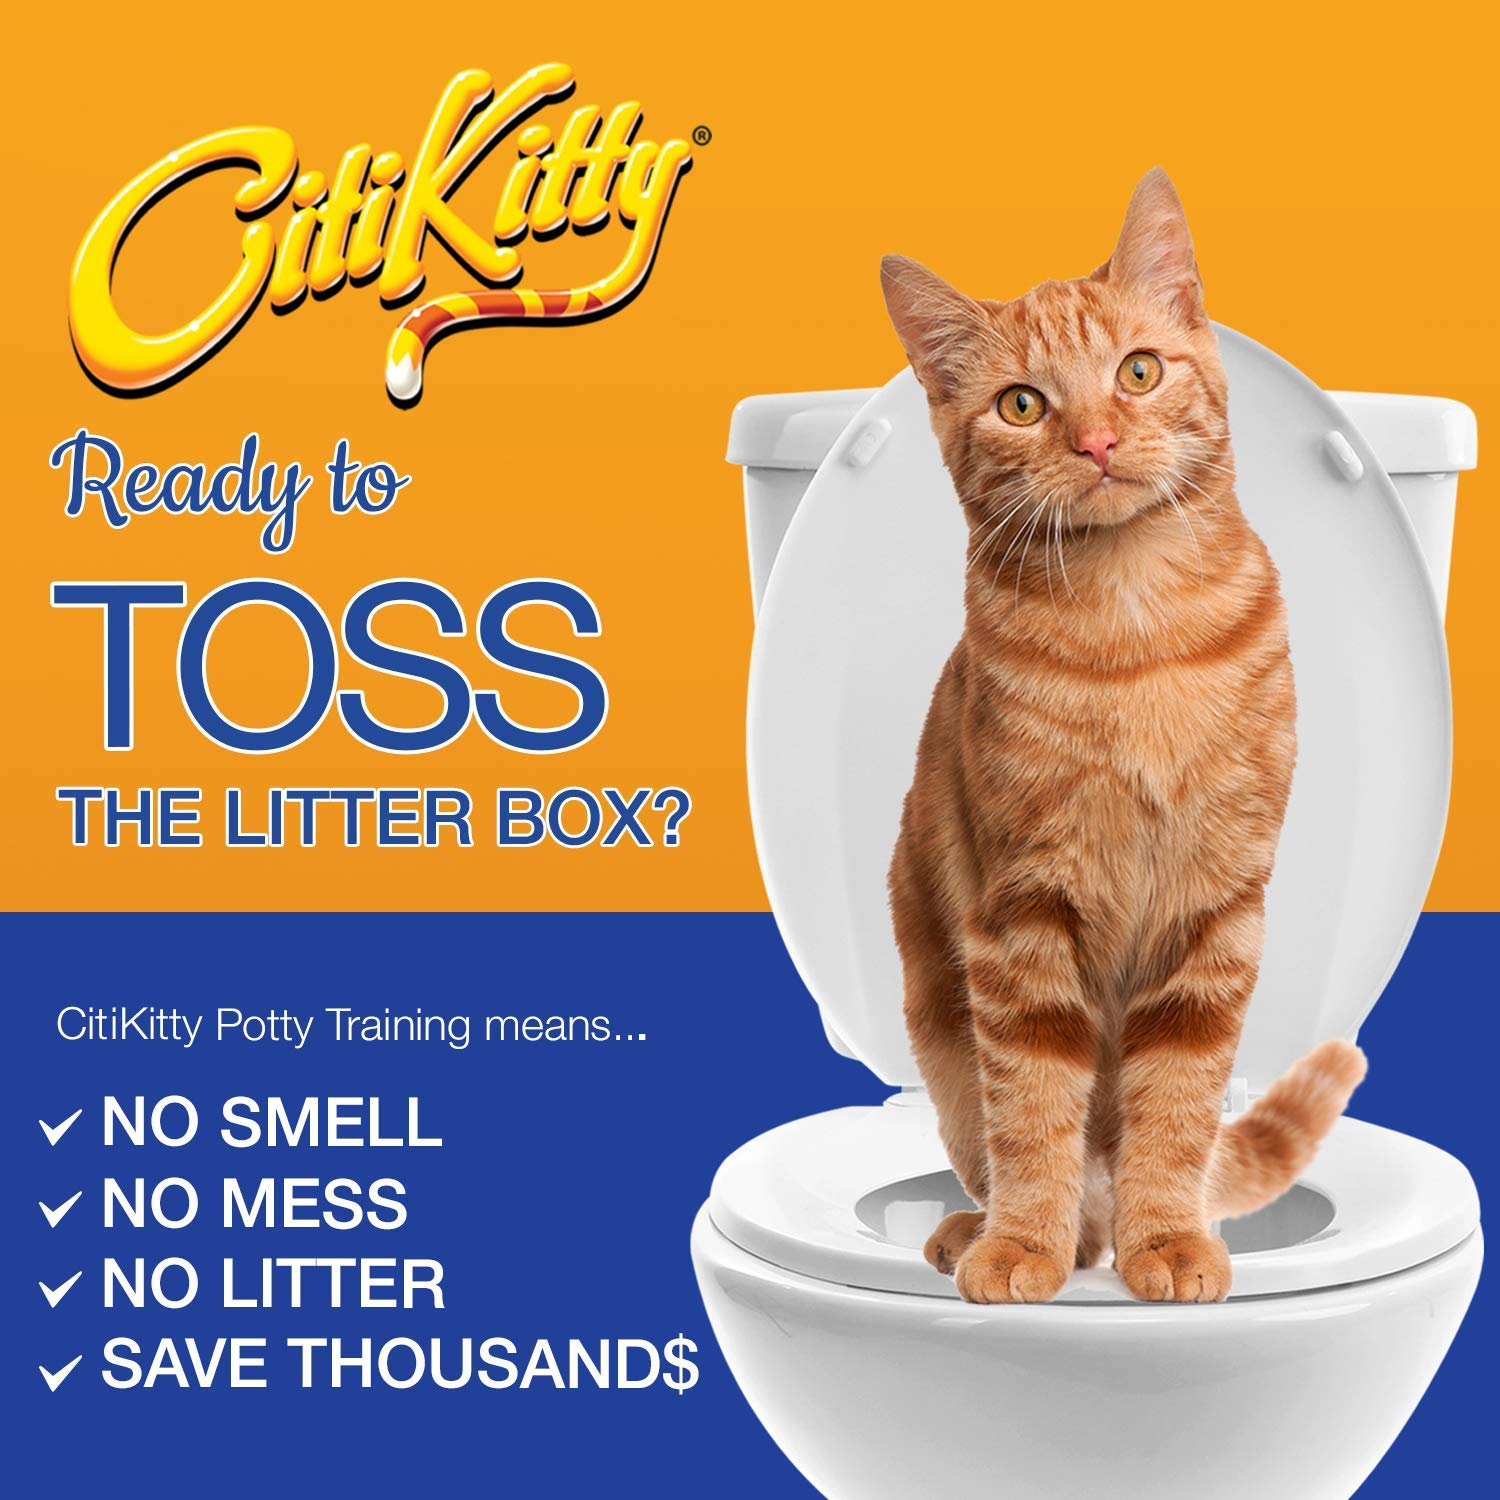 Buy Citikitty Cat Toilet Training Kit Online At Low Prices In India Amazon In